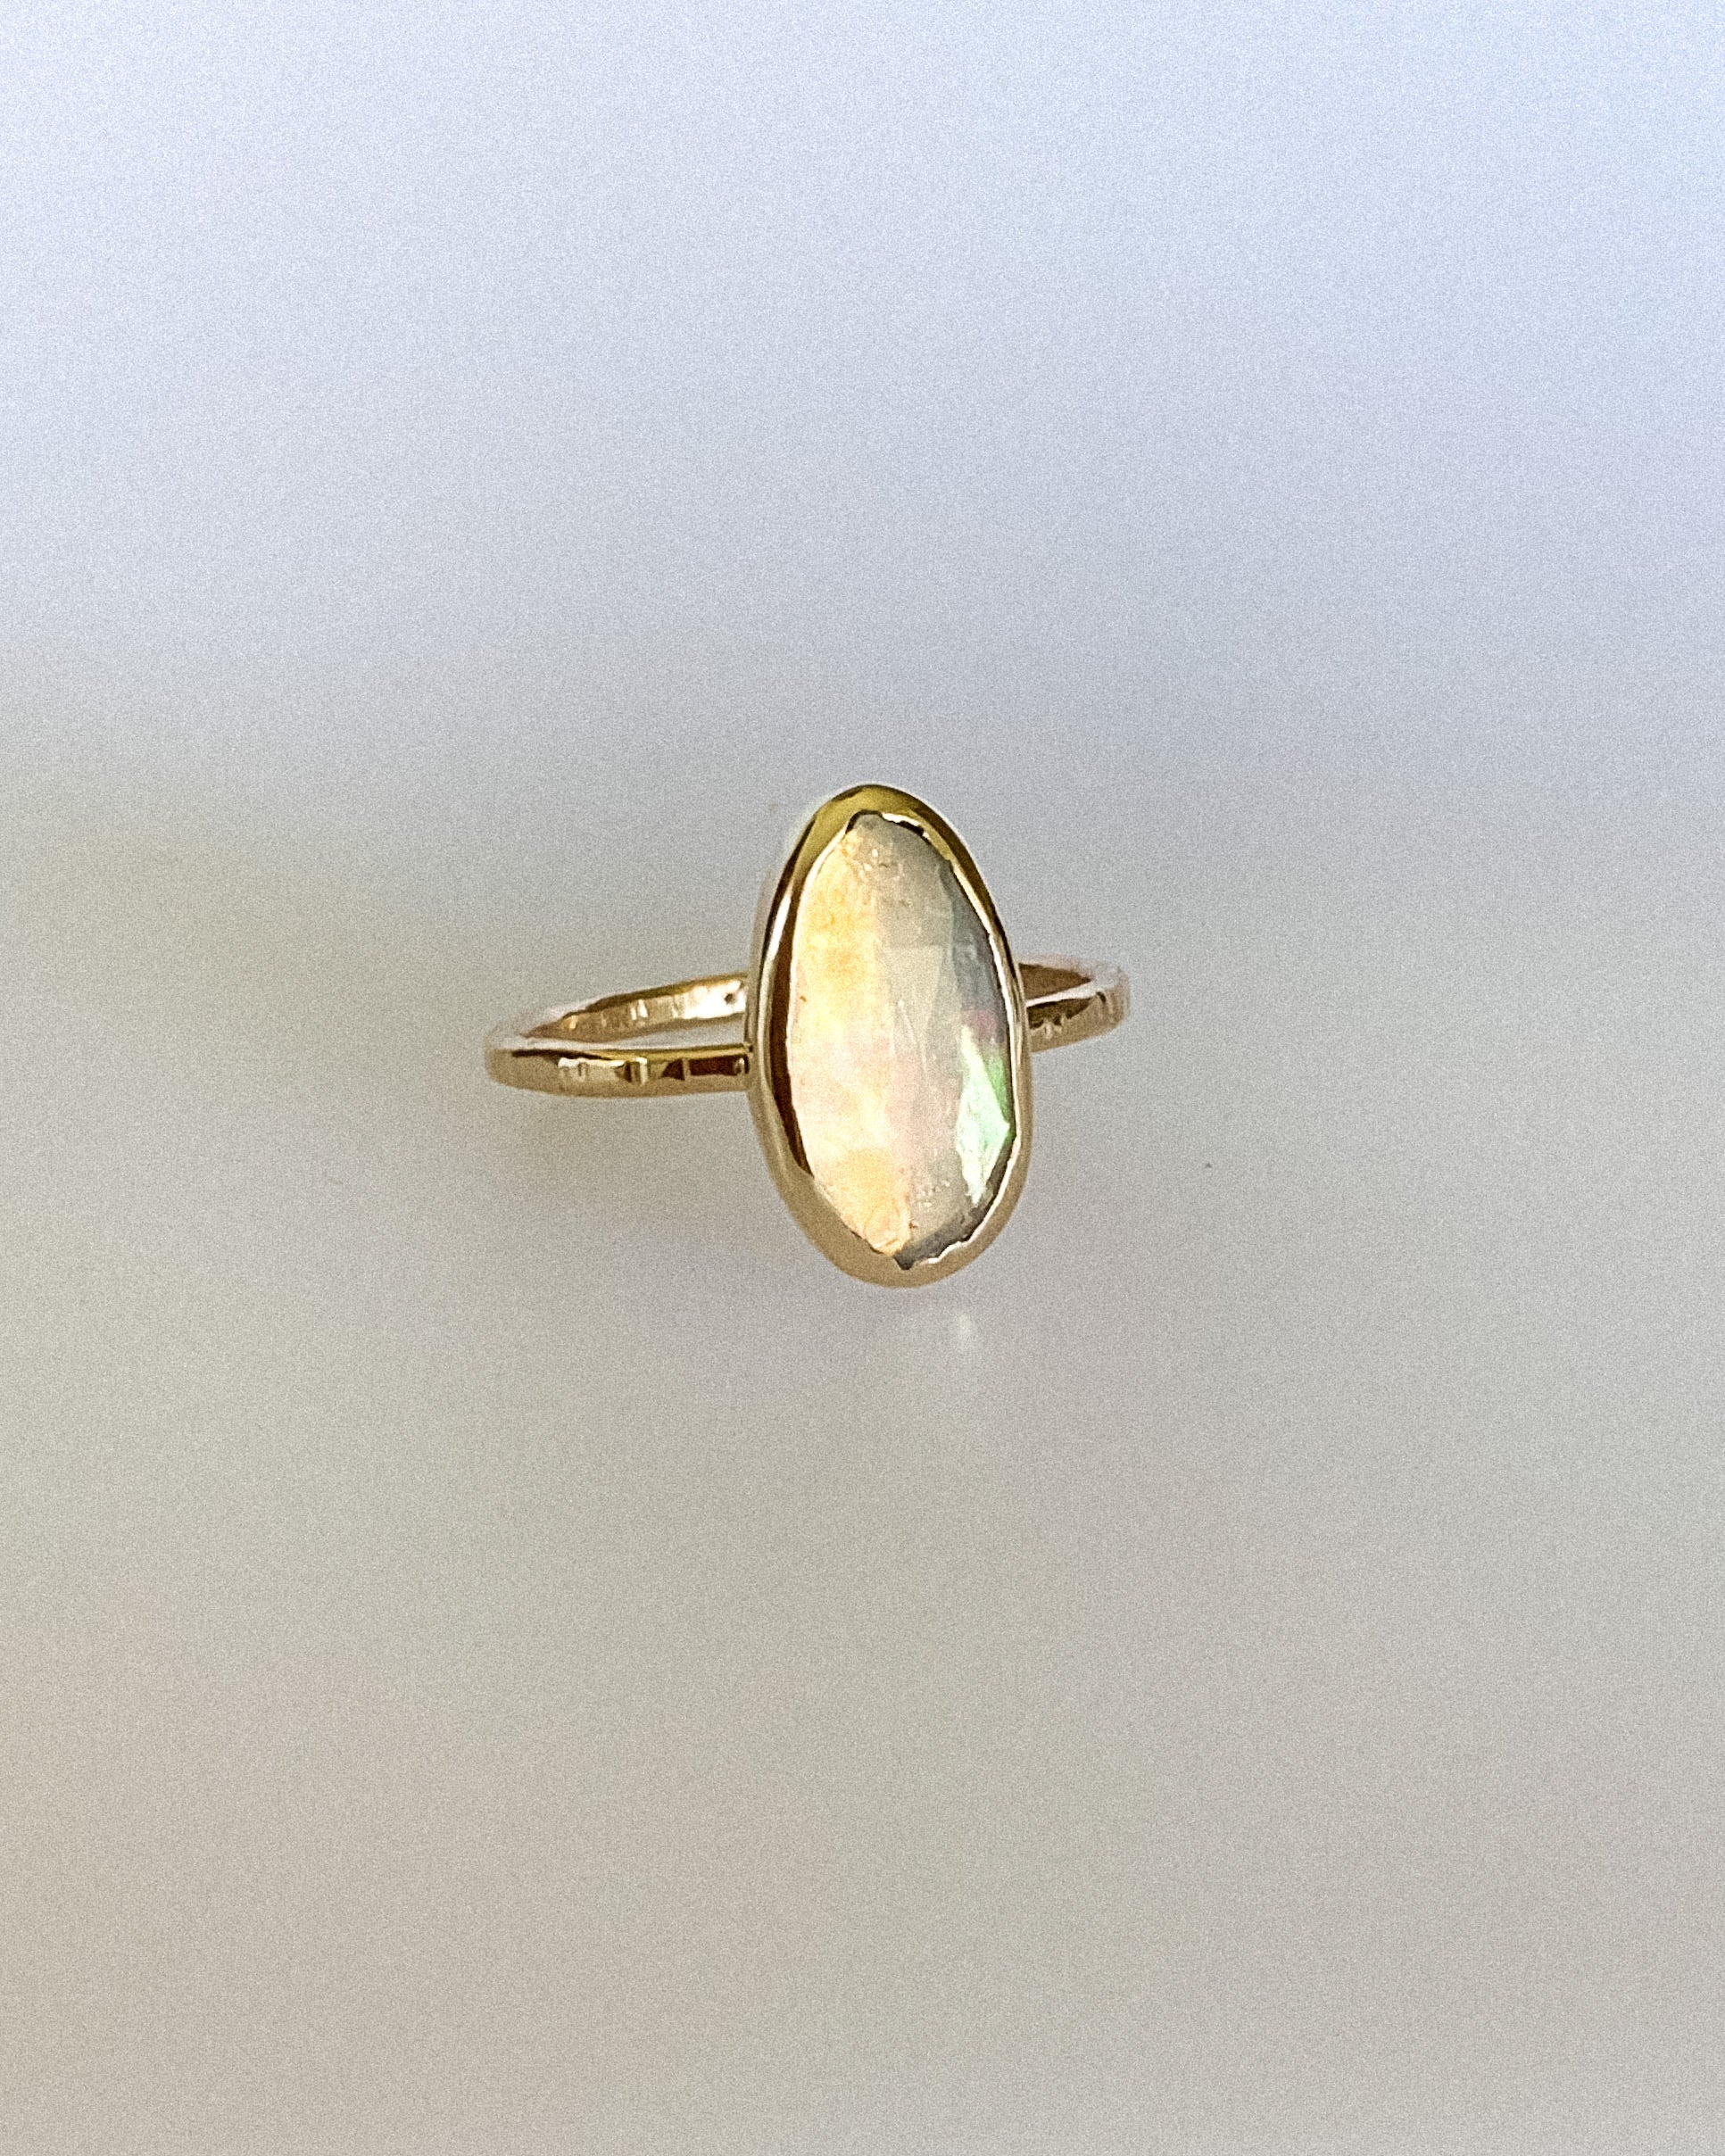 Welo opal ring - gold - size 8